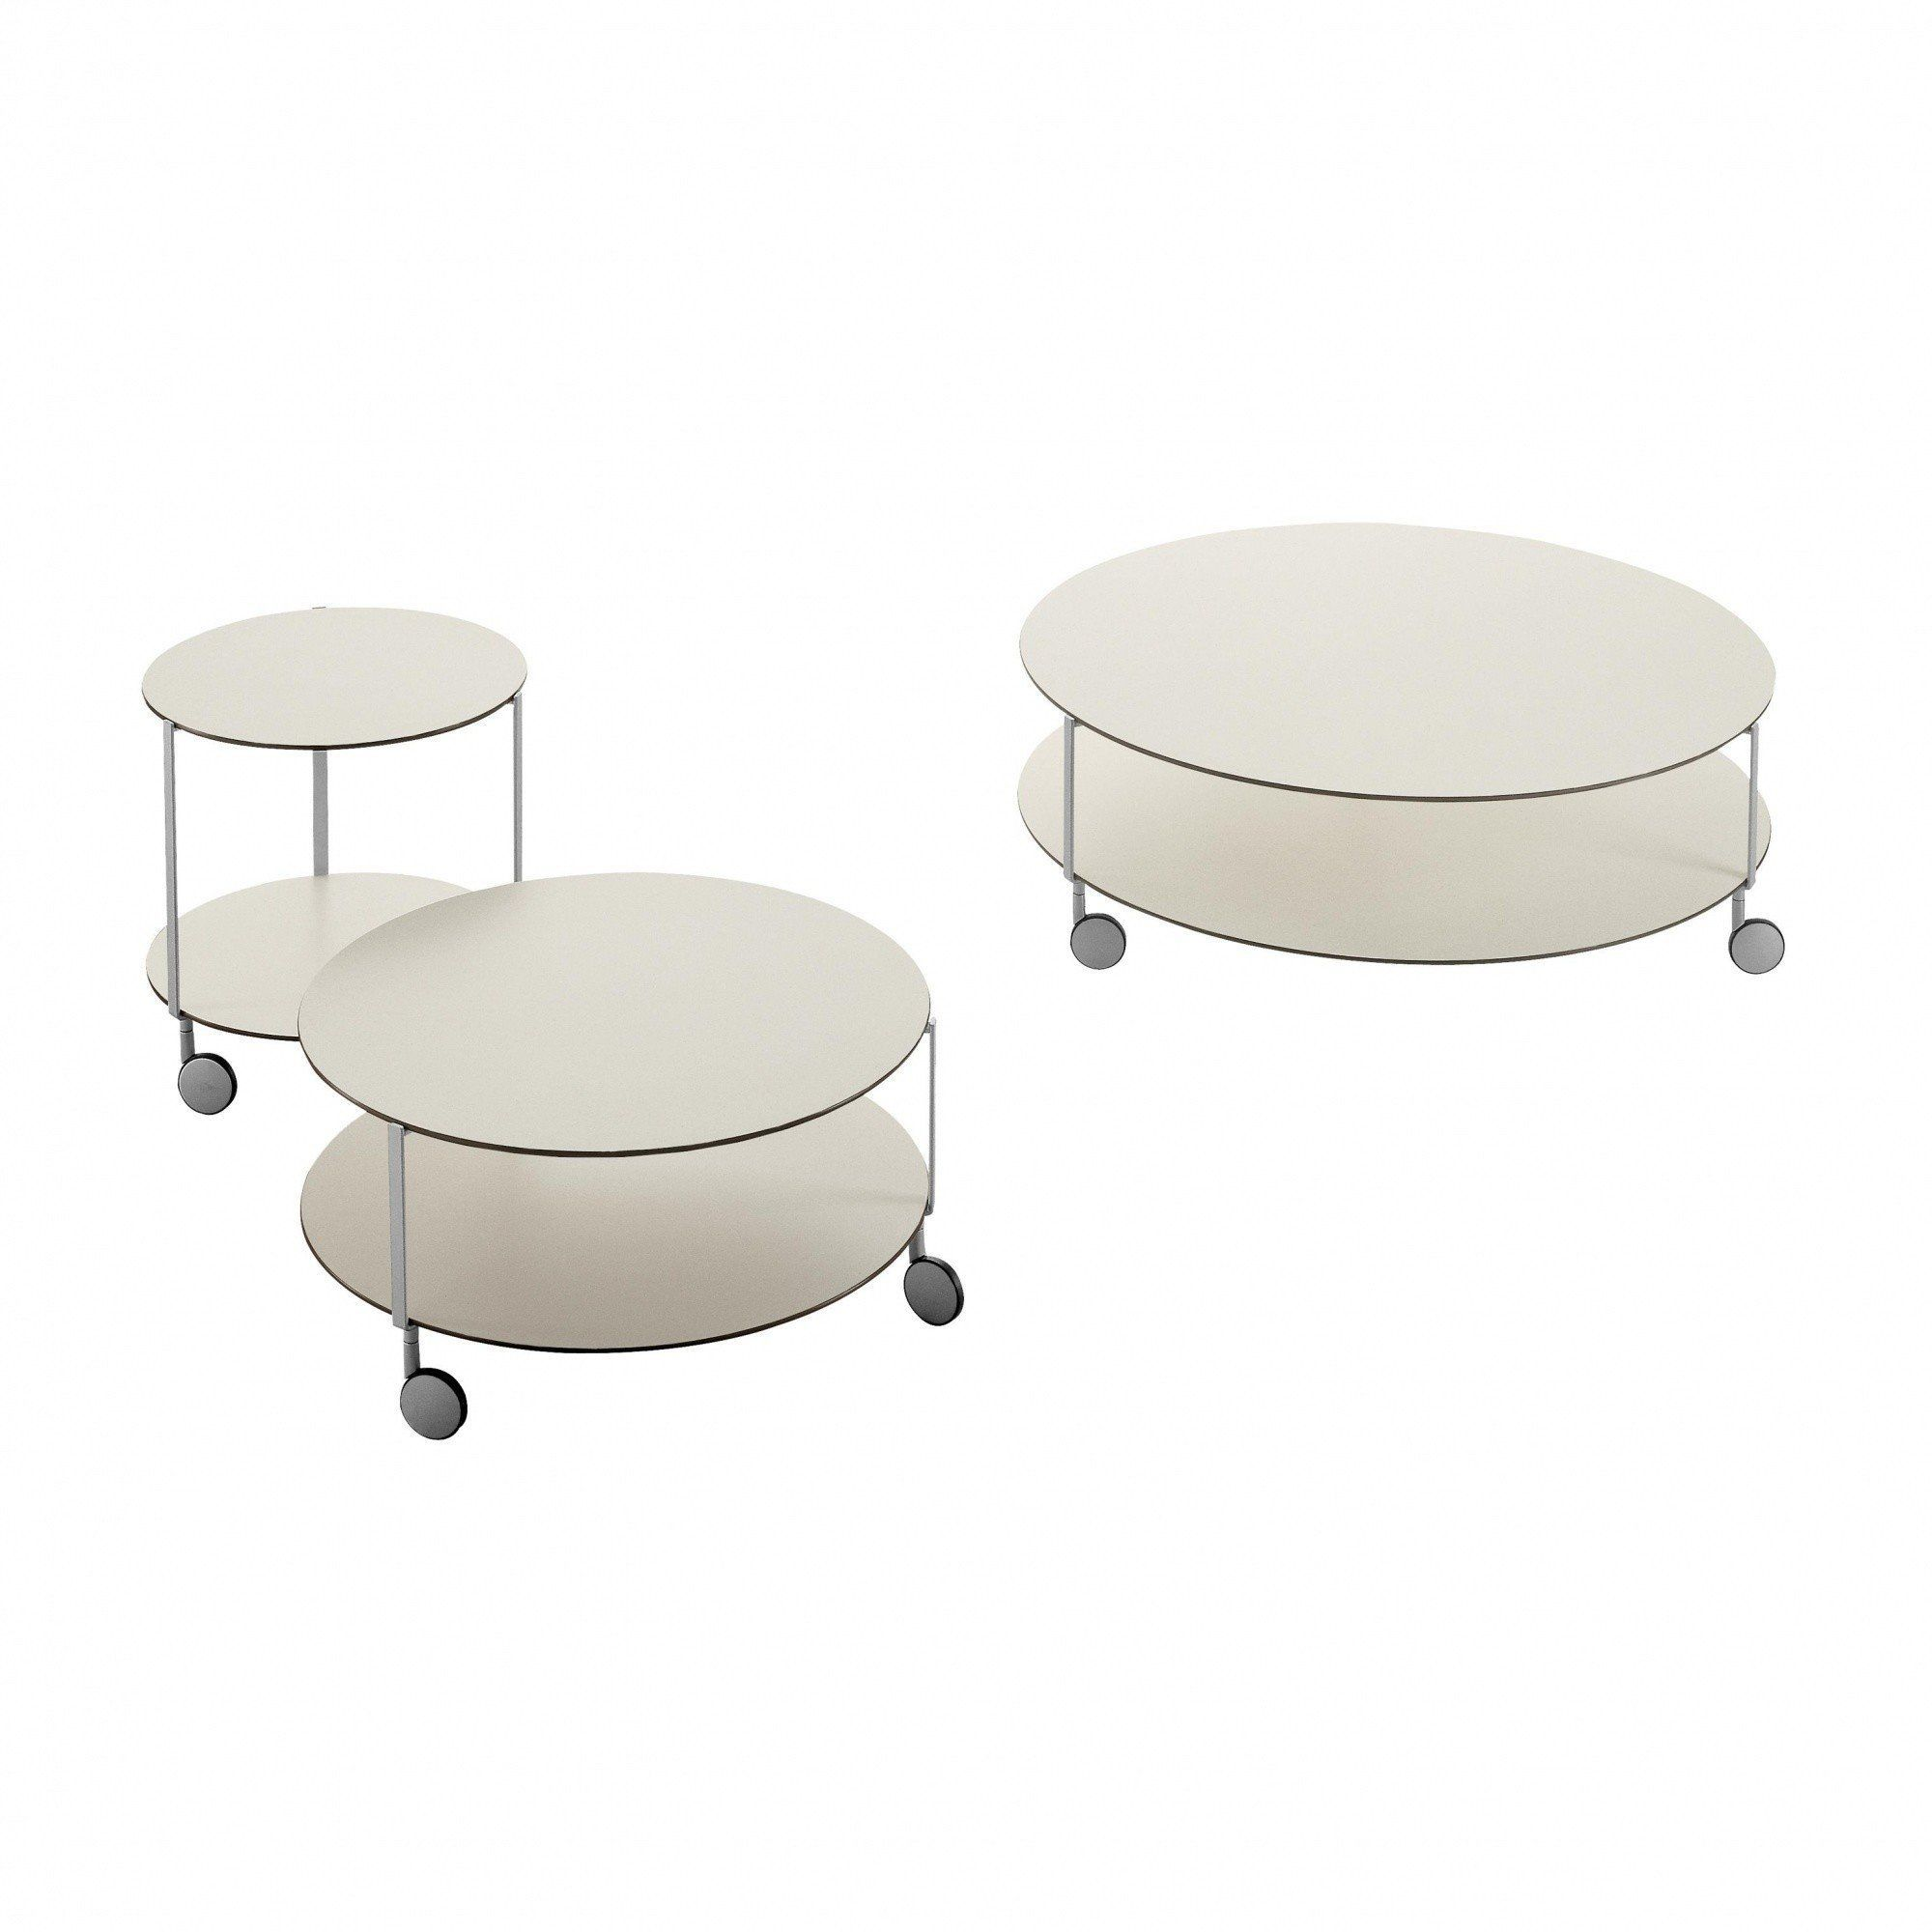 Zanotta  Gir Castor Mounted Table With Wheels